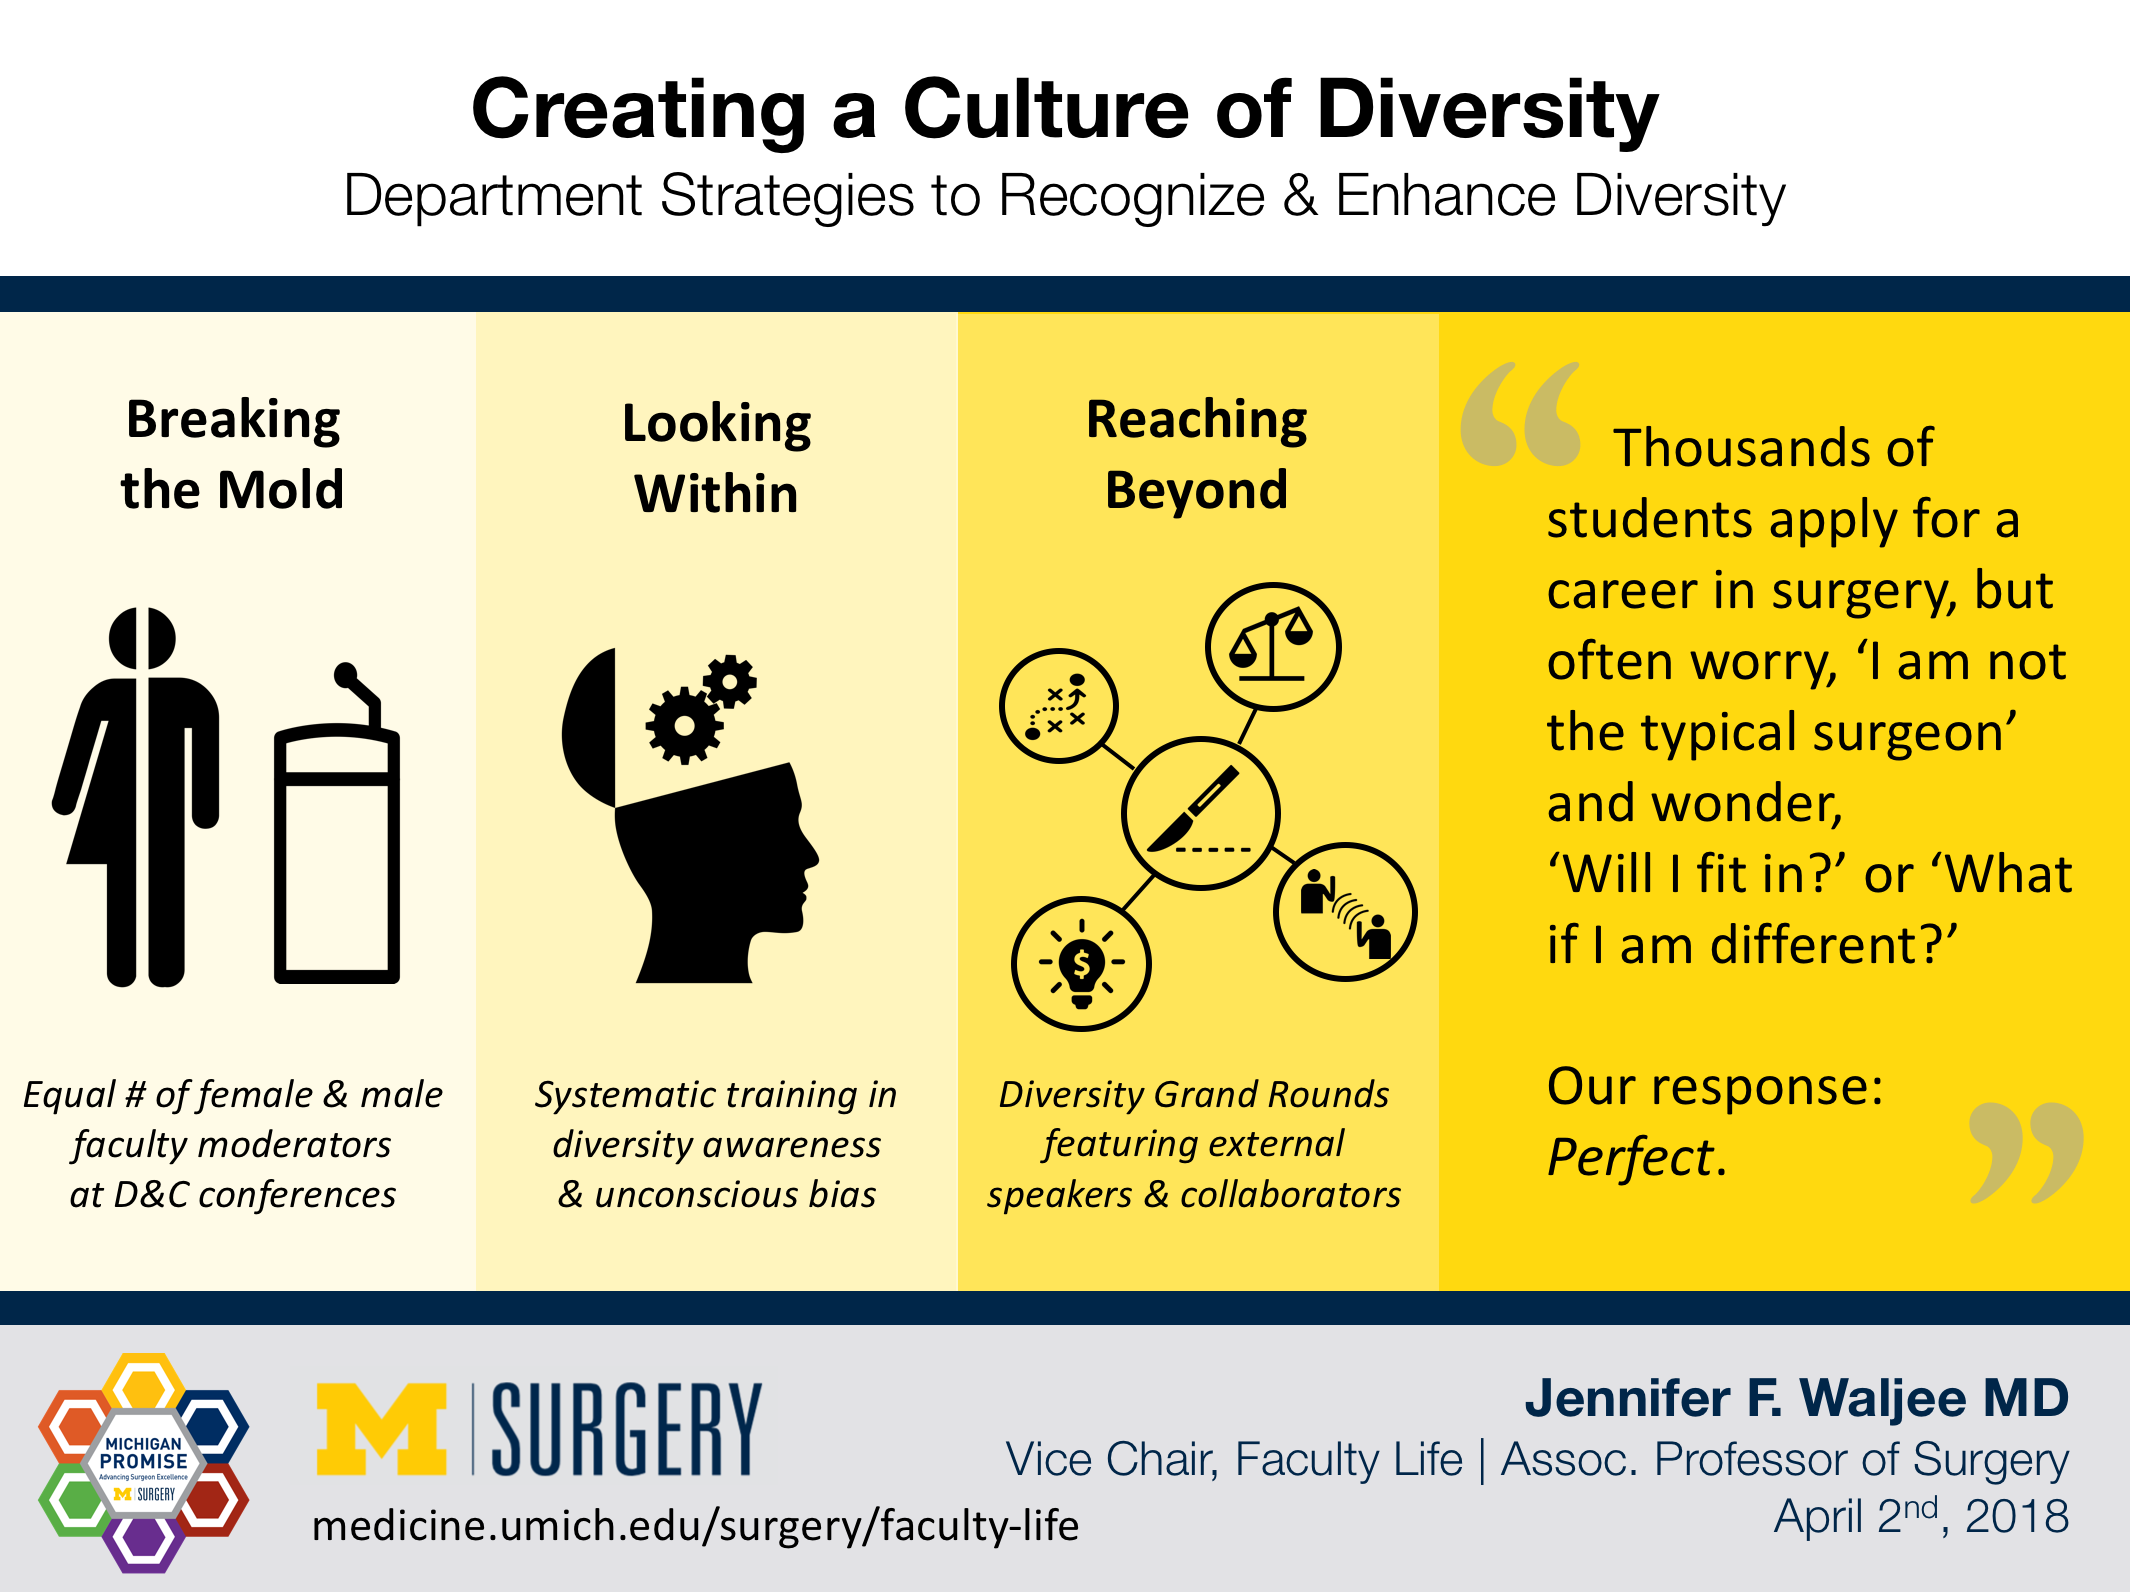 Creating a Culture of Diversity: Department Strategies to Recognize and Enhance Diversity